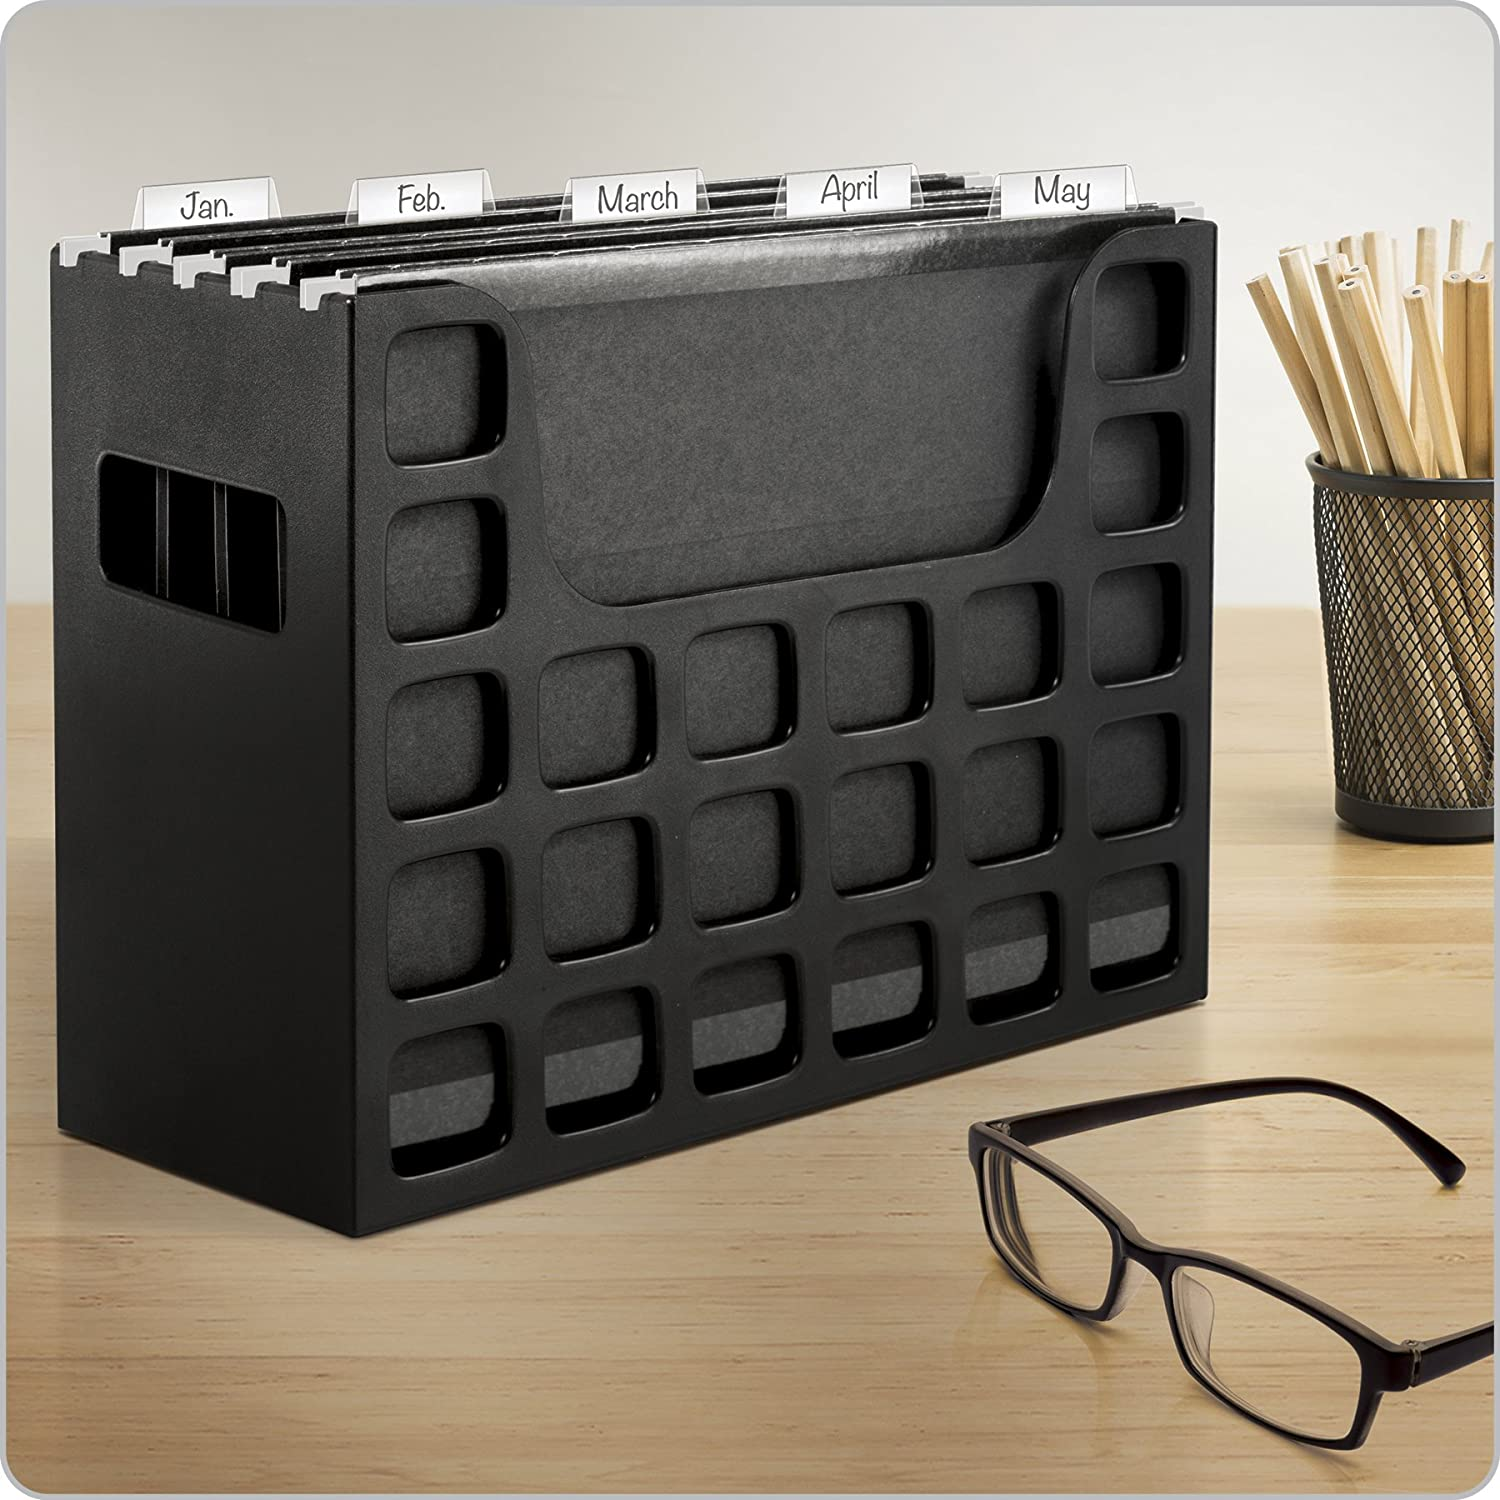 9-1//2 Inches x 12-3//16 Inches x 6 Inches Tabs /& Inserts Hanging File Folders Side Handles Letter Size Pendaflex Portable Desktop File 23013 Black